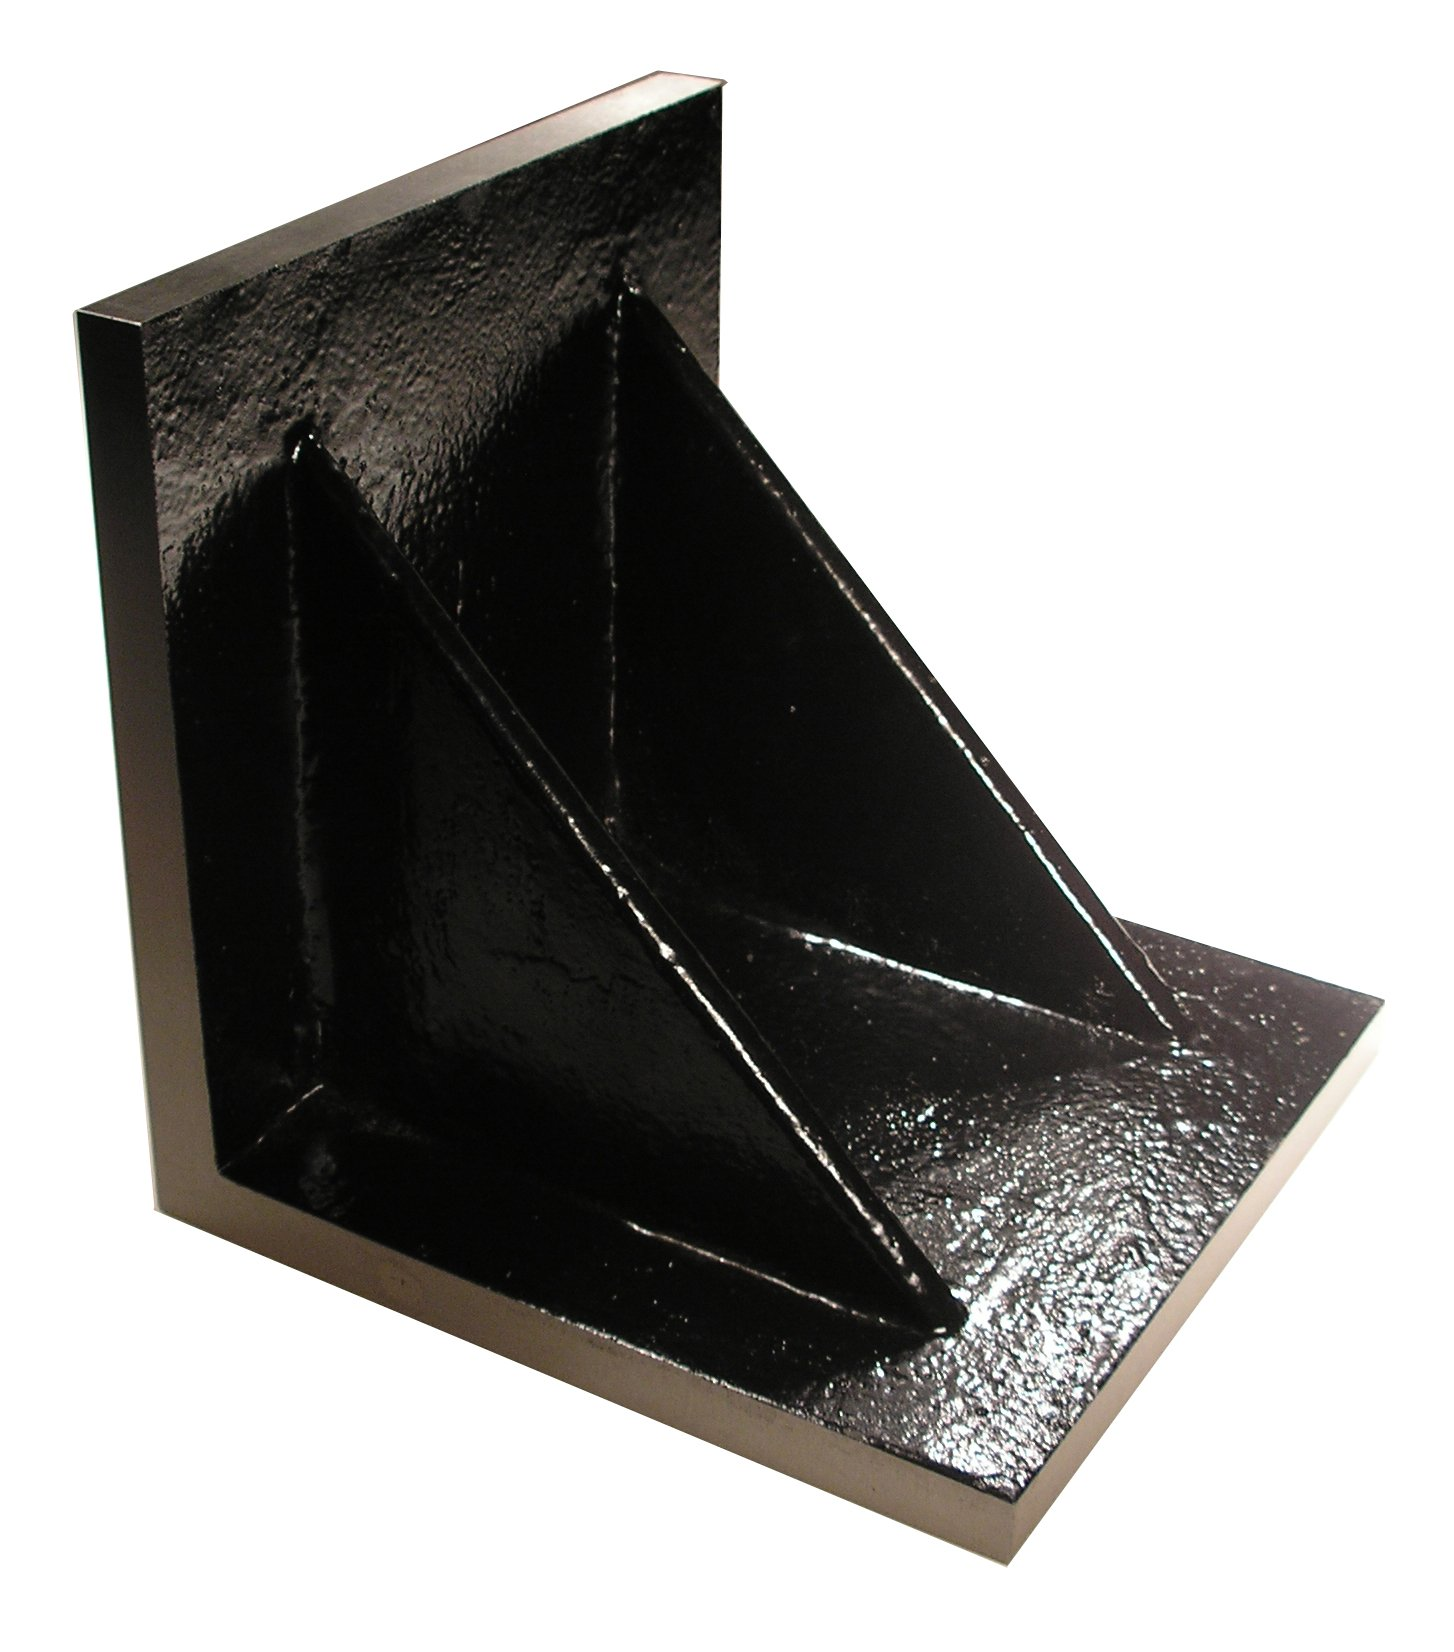 Value Line 6 x 6 x 6 Plain Angle Plate - Webbed - Machined by Suburban Tool